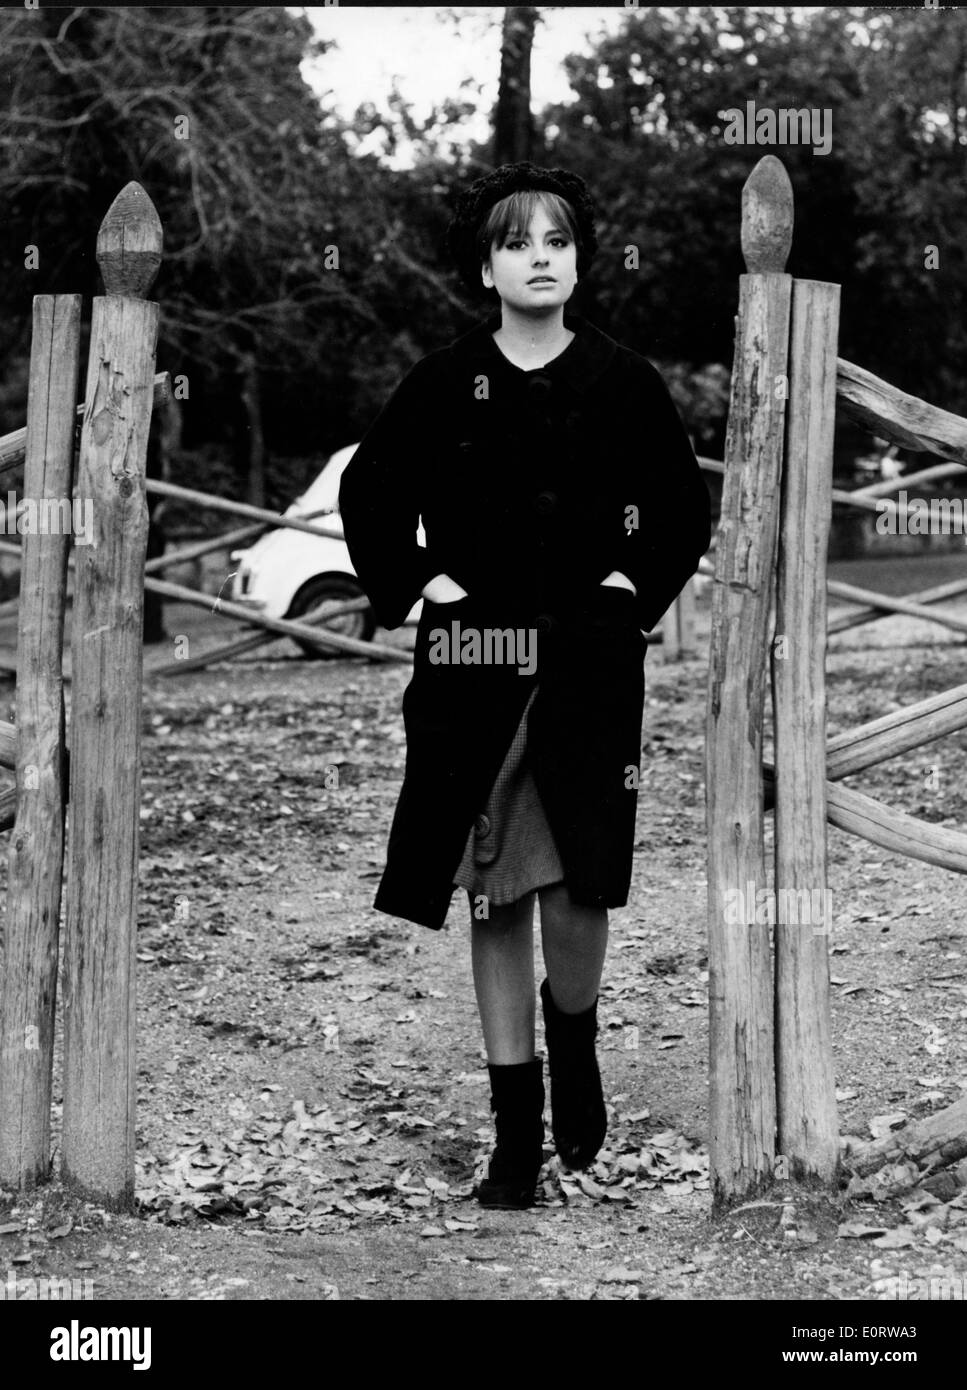 Actress Edy Farinelli at stables - Stock Image